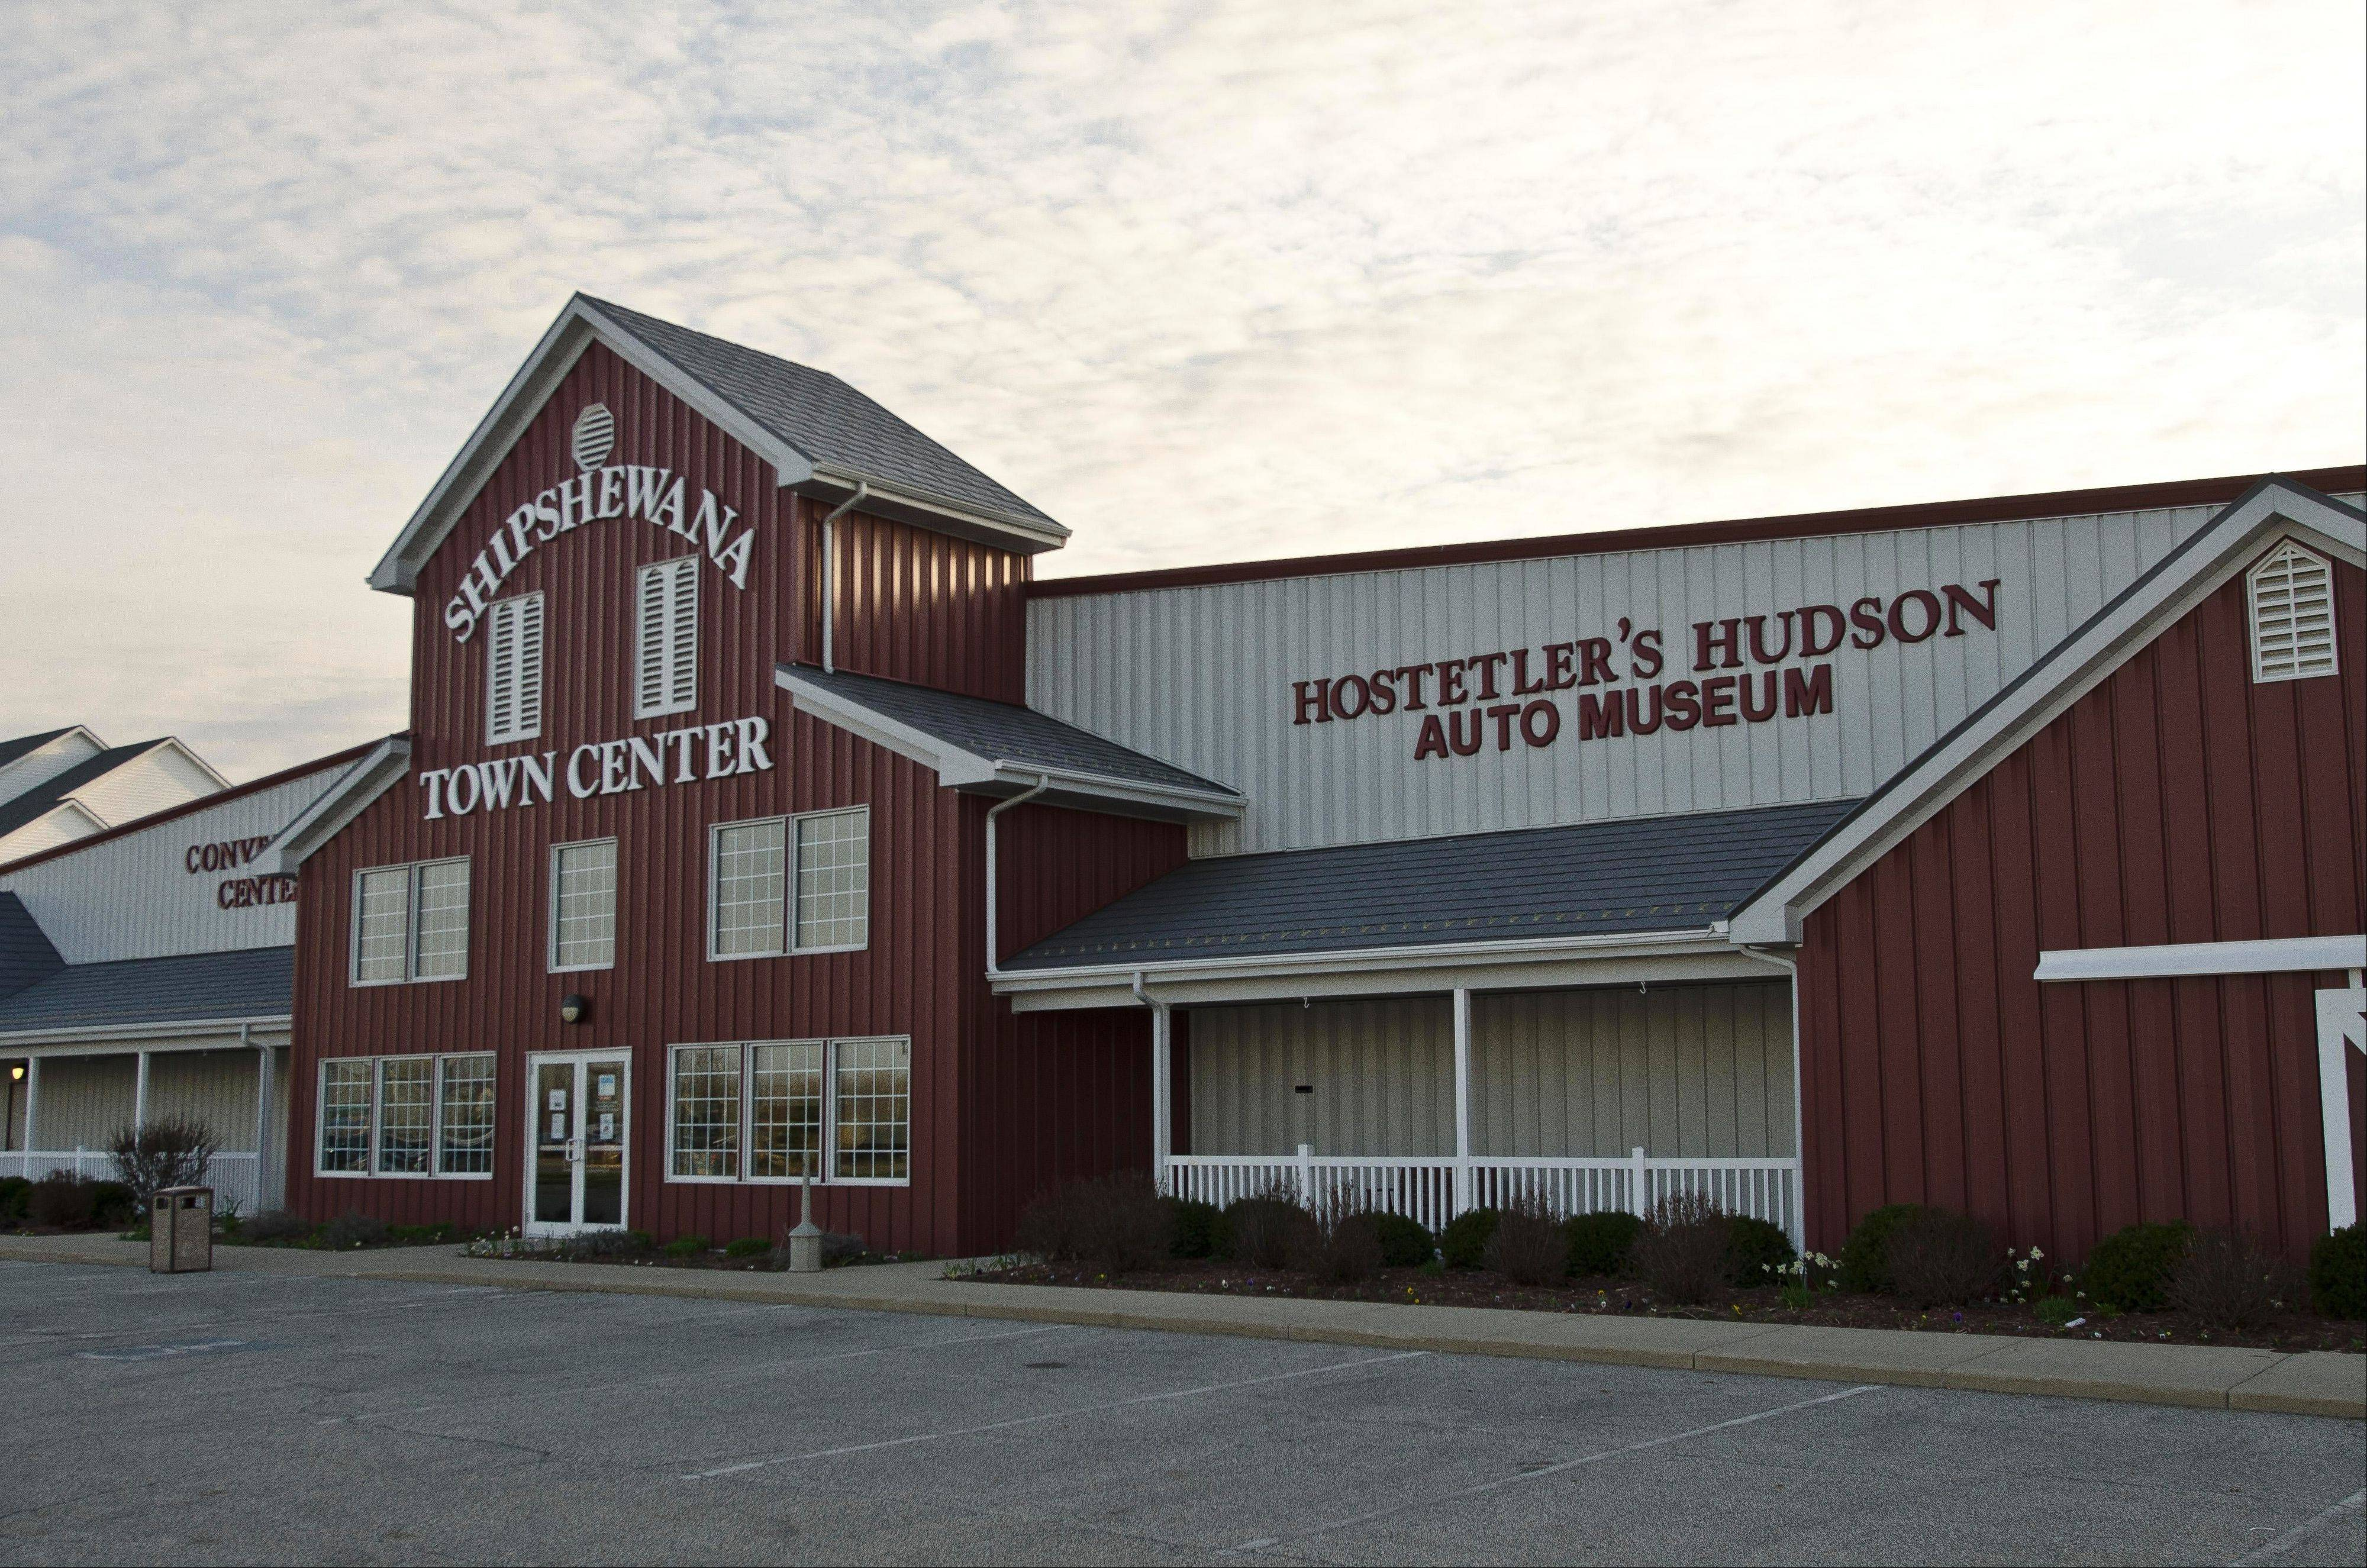 The Hostetler family worked with the town of Shipshewana, Ind., to build the museum and town center.